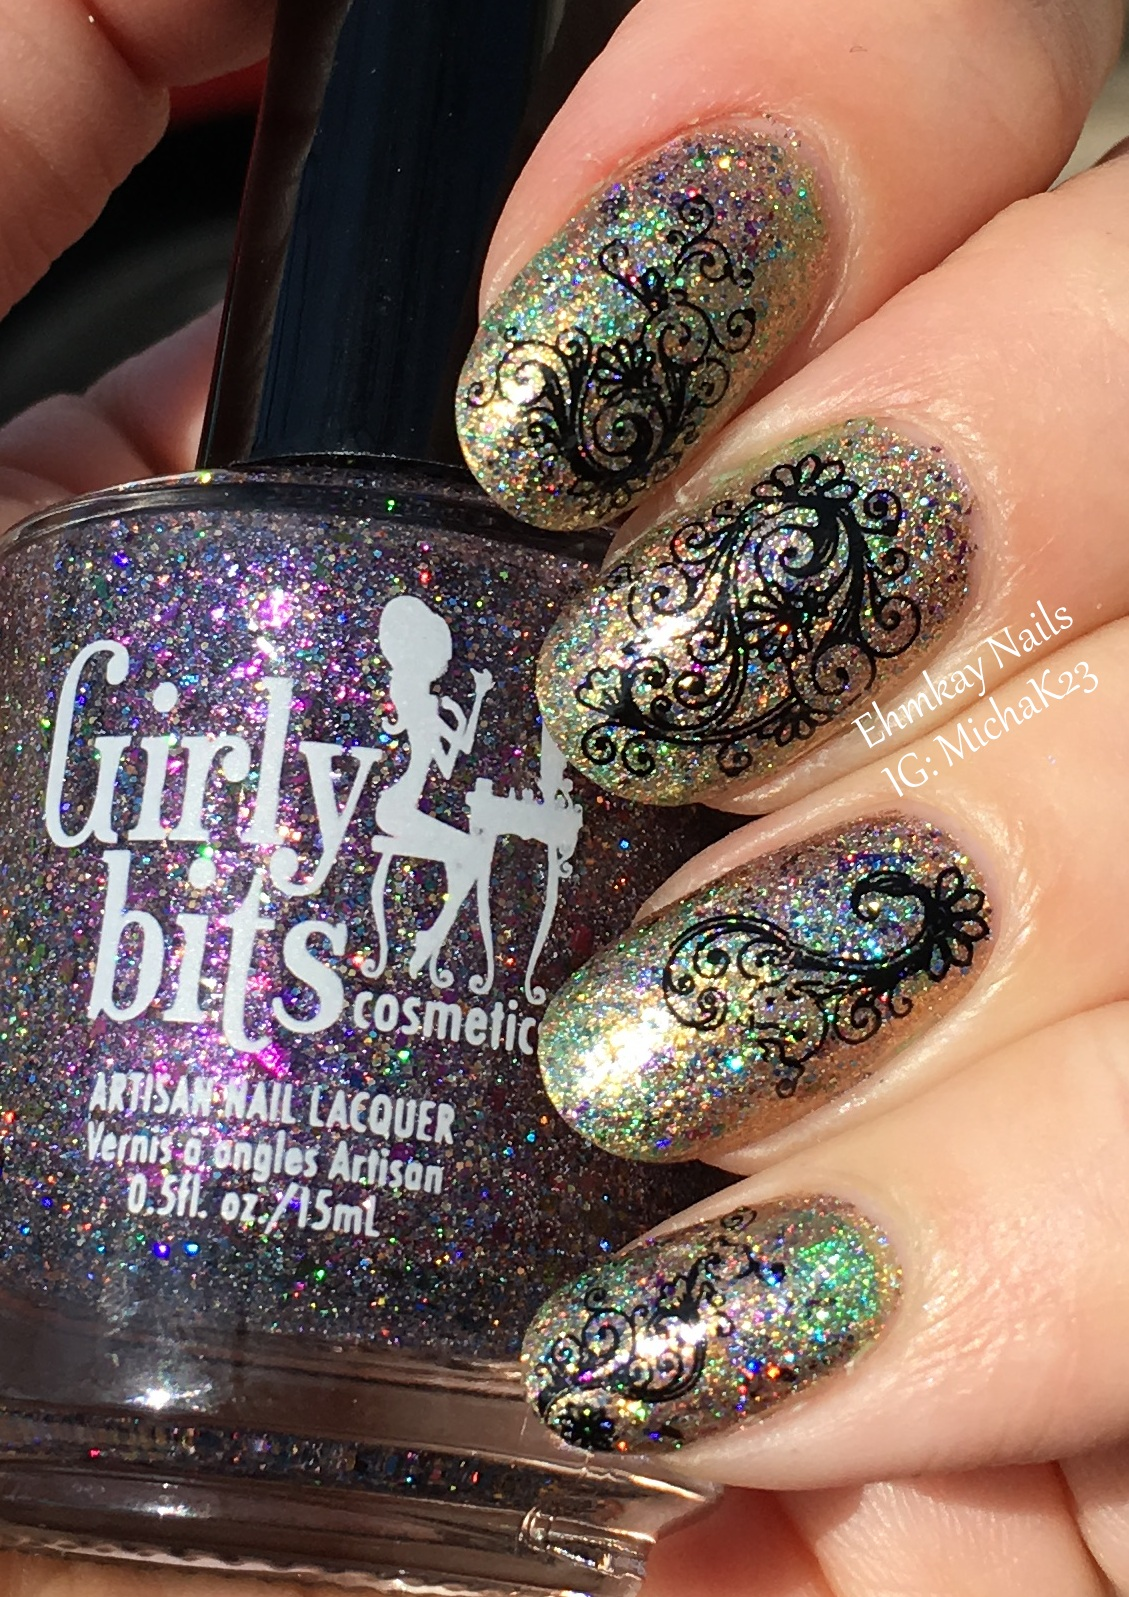 ehmkay nails: Mardi Gras Nail Art: Saran Wrap with Lace Decals